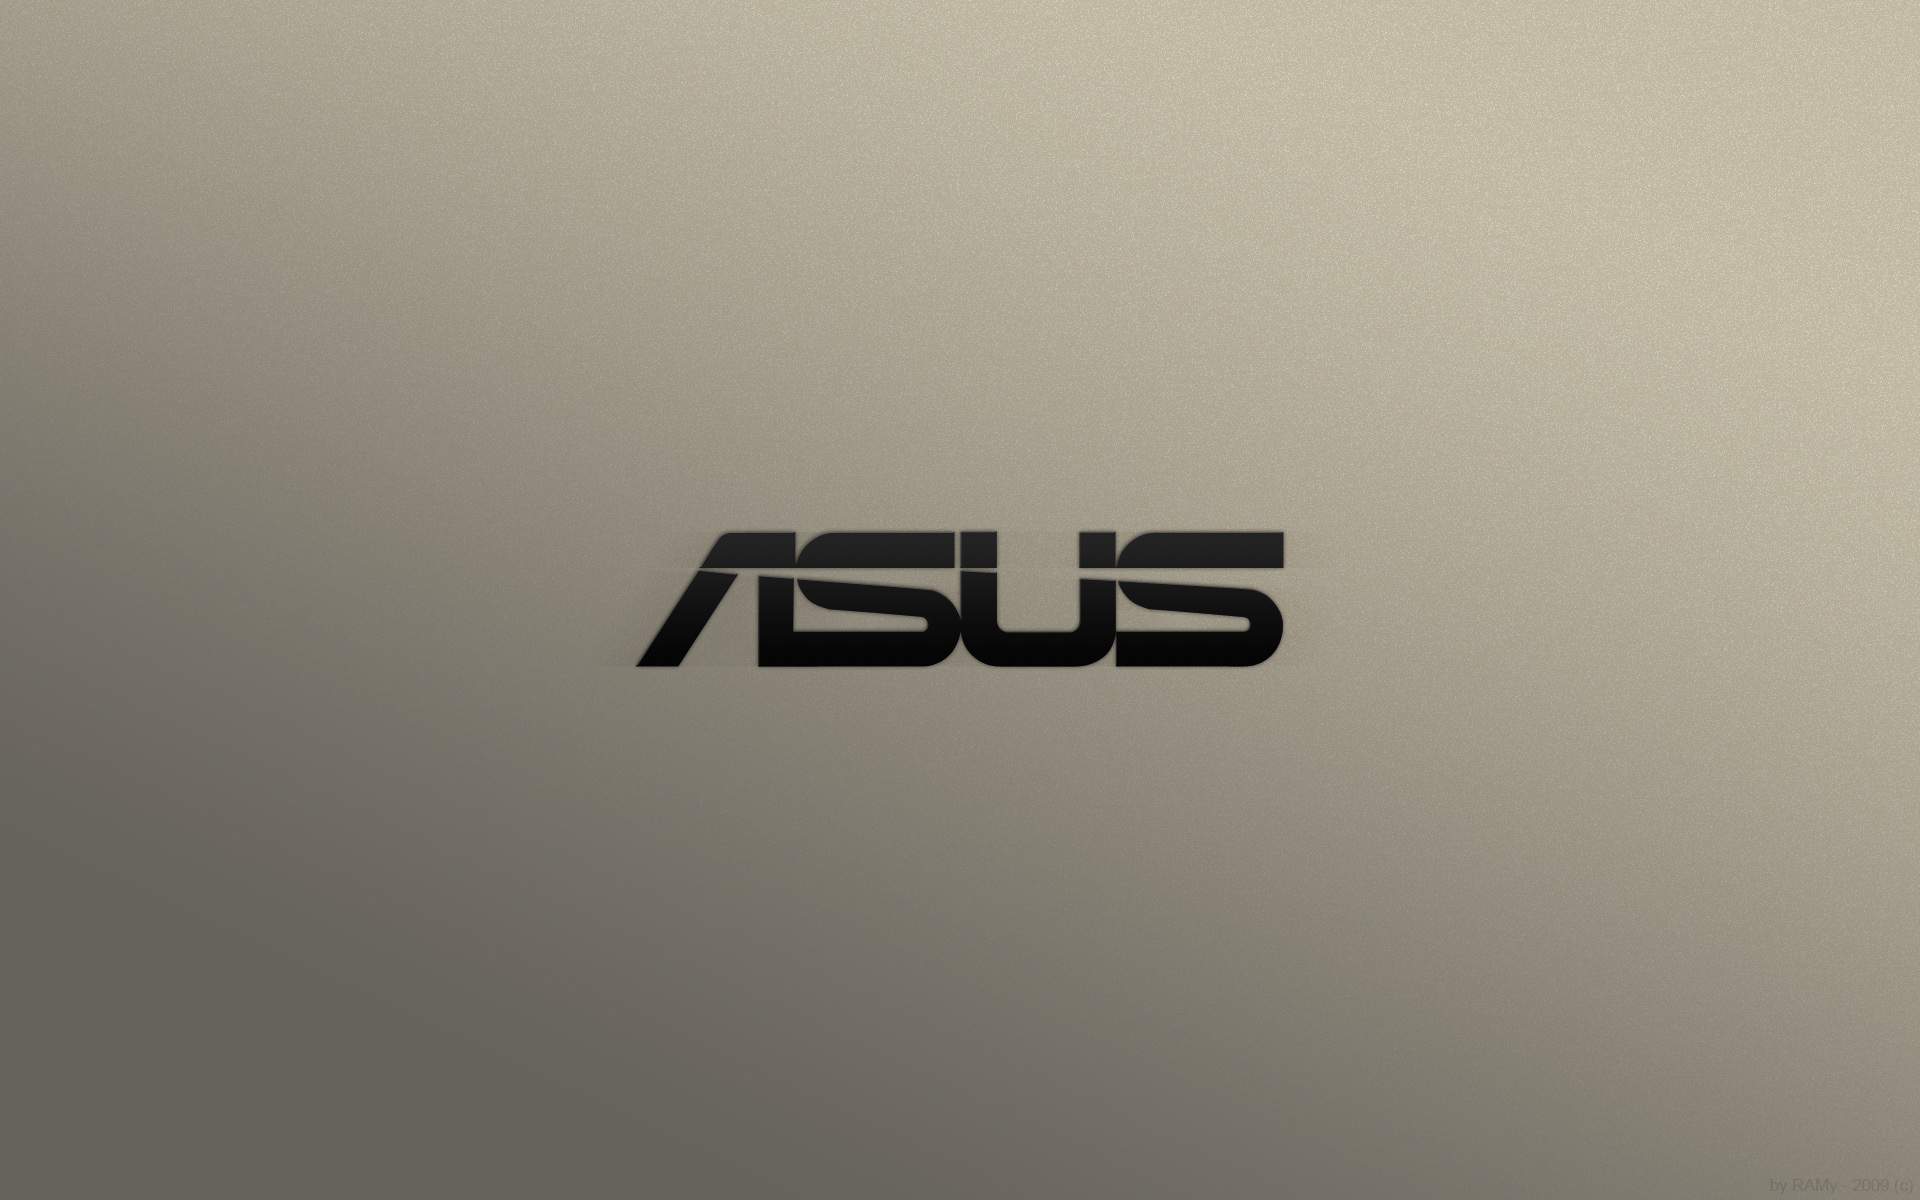 Asus-is-my-favorite-company-when-it-comes-to-putting-together-computers-Their-logo-is-recognizable-wallpaper-wp3402648